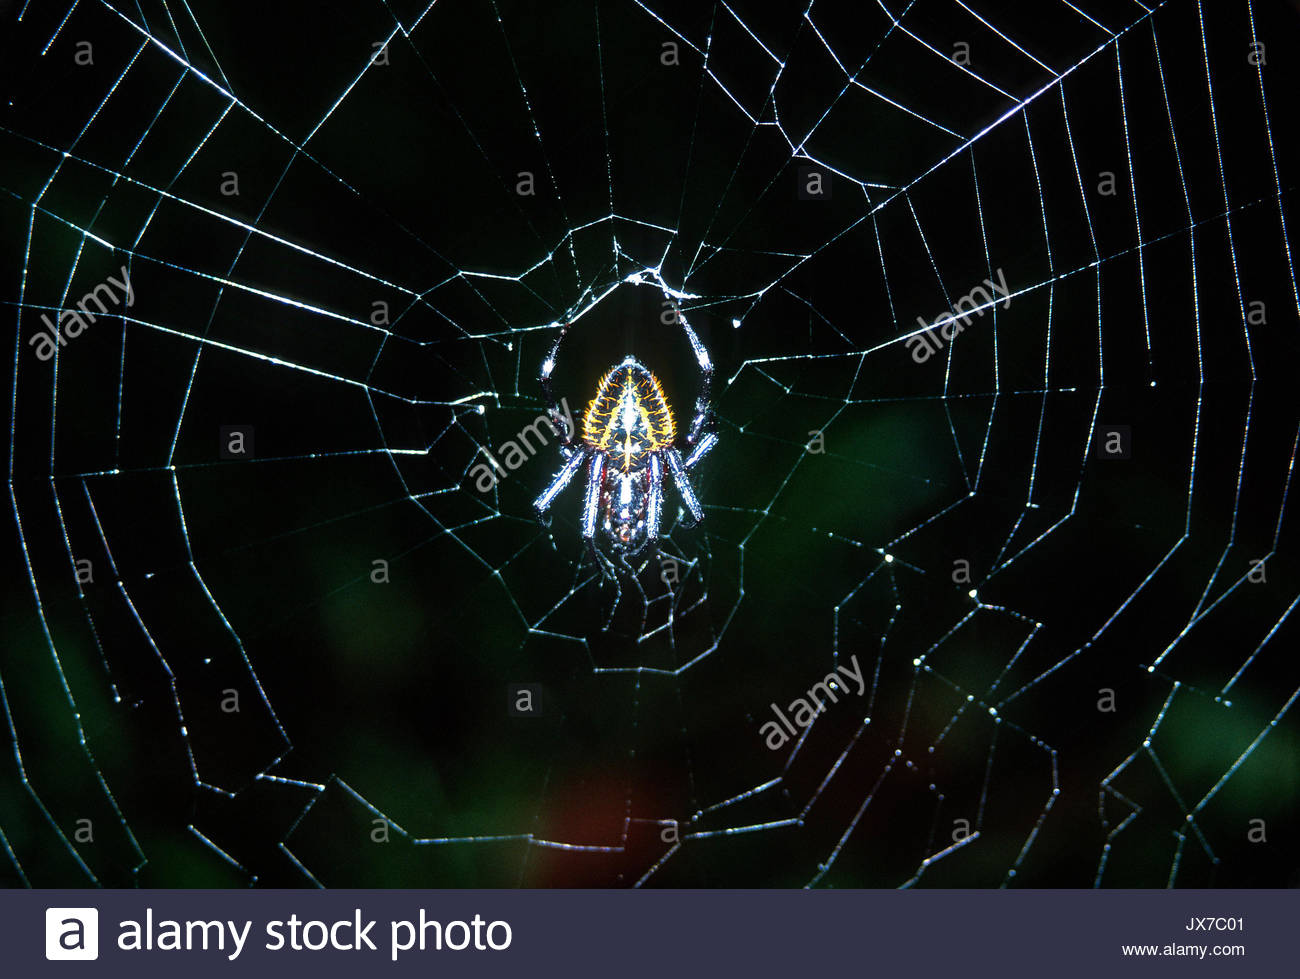 An orb-weaving spider in the center of its web. - Stock Image